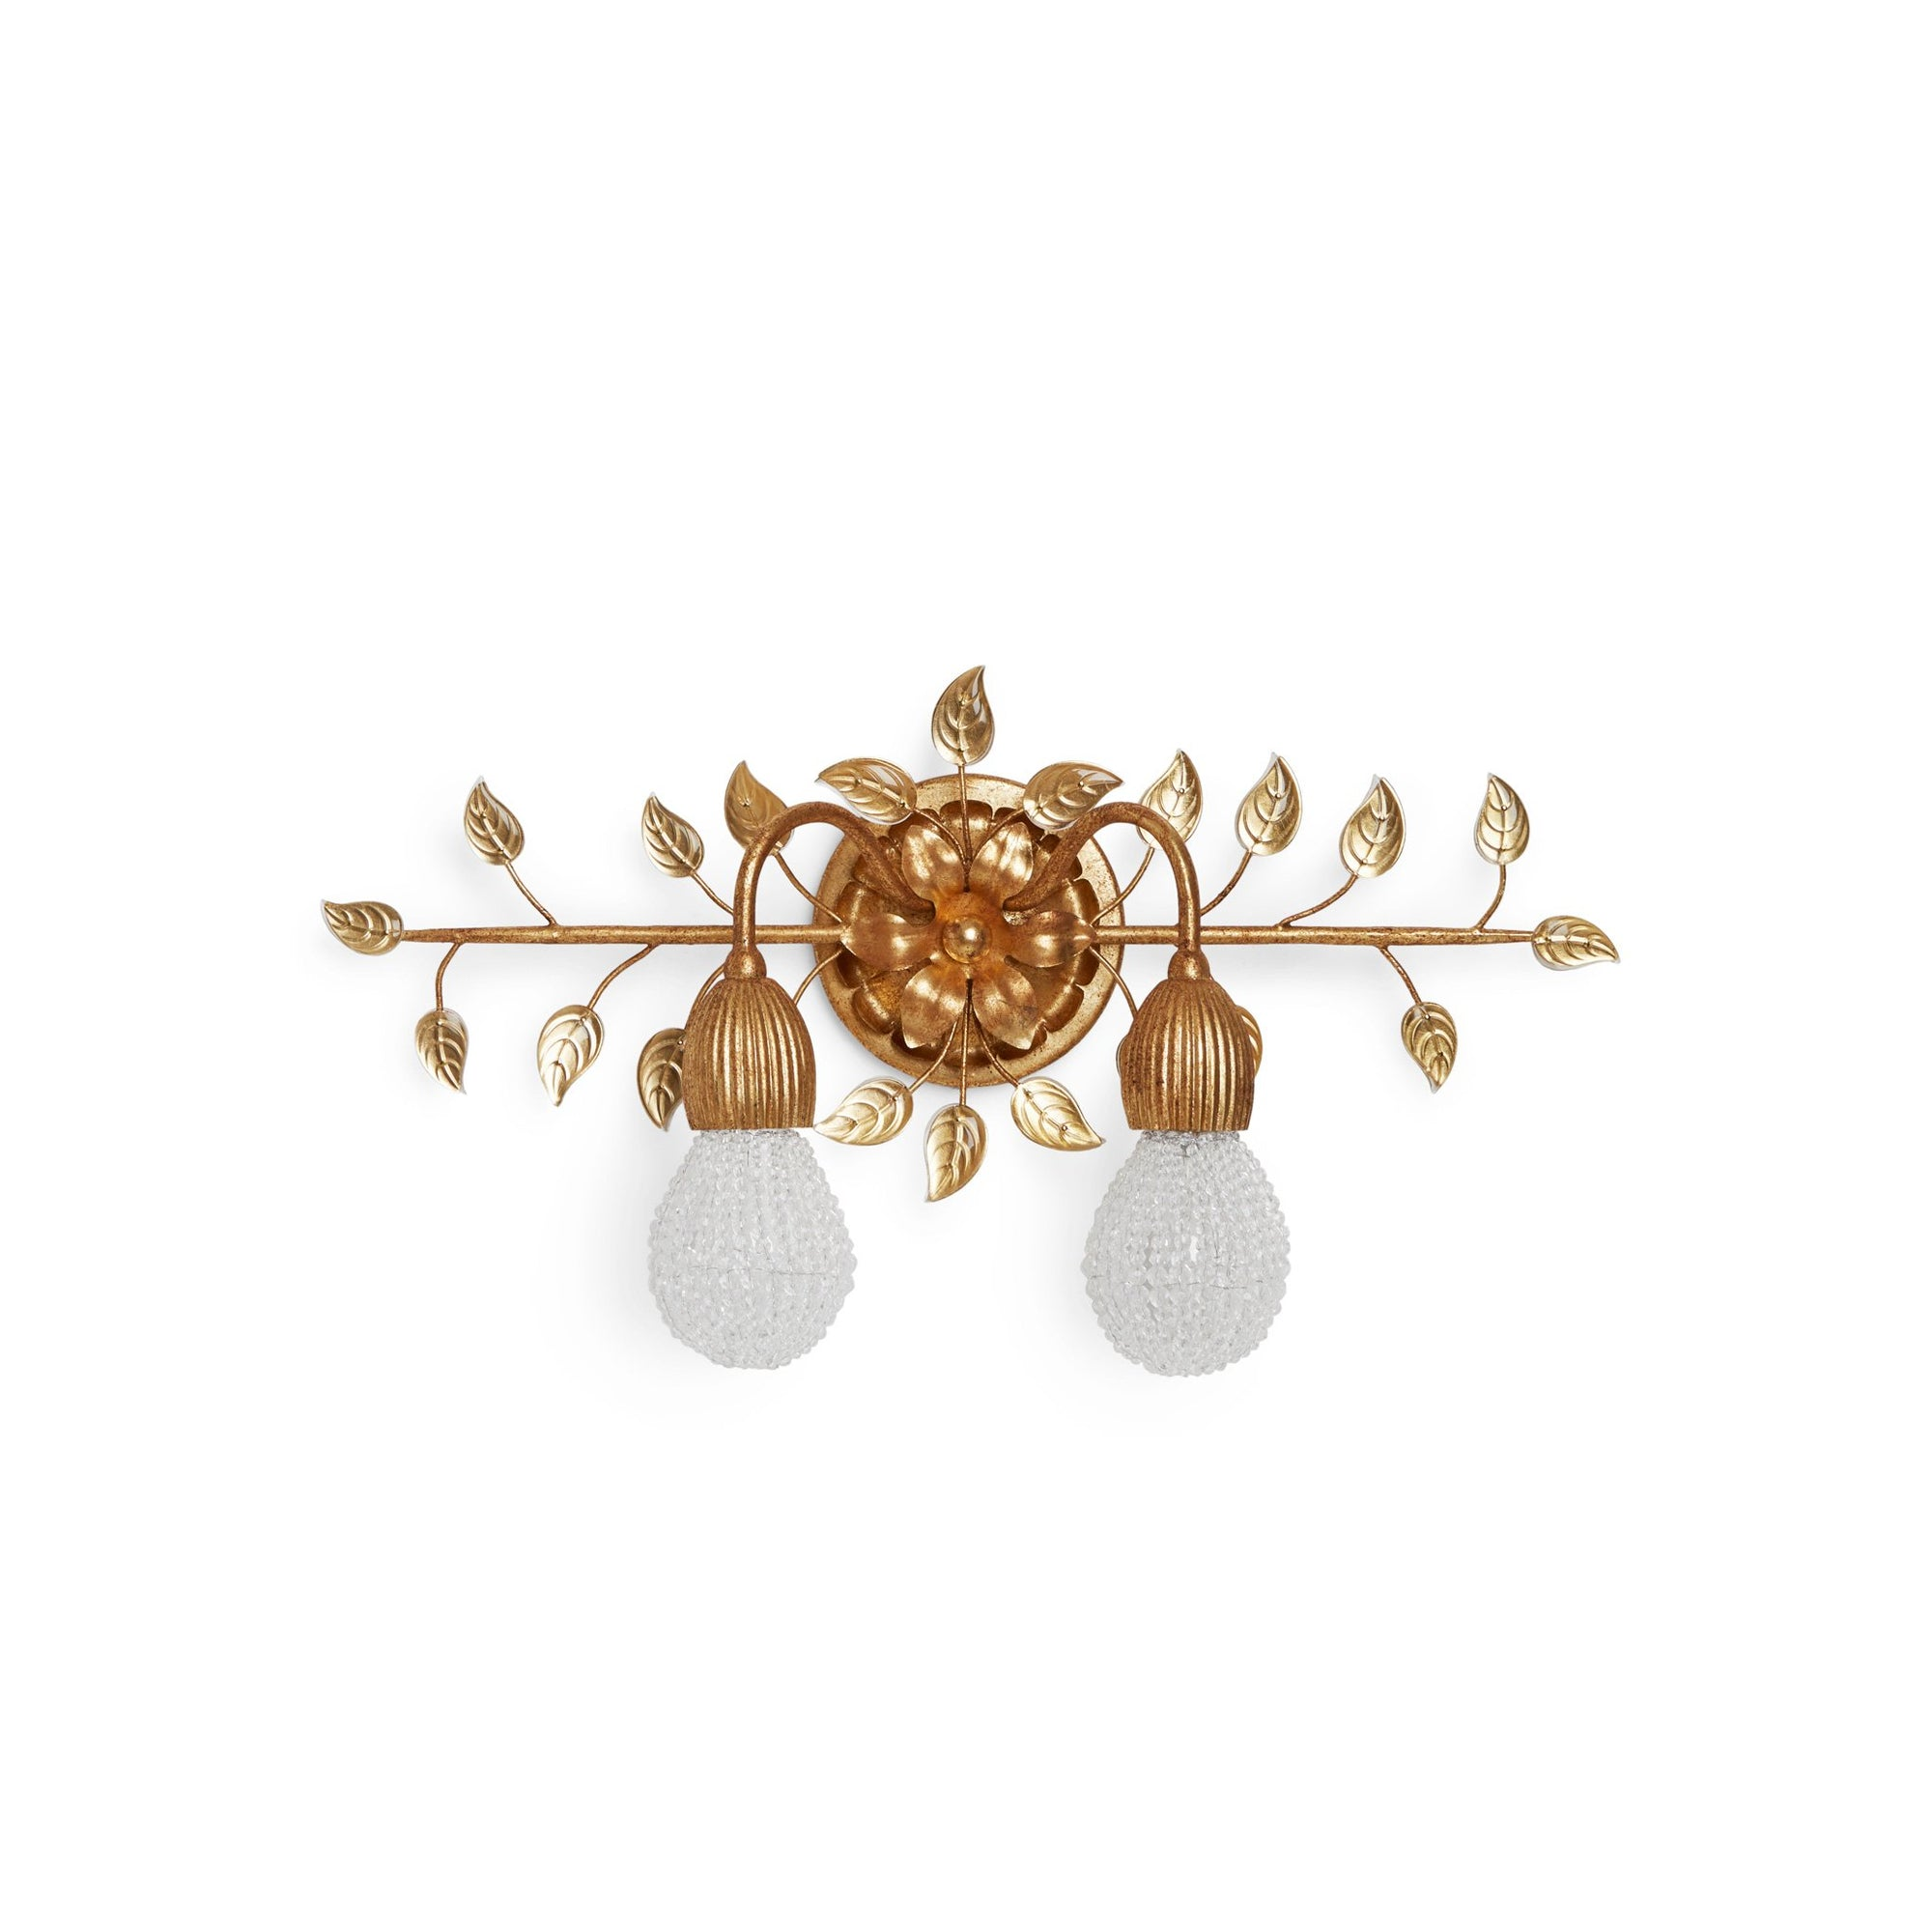 7116-G Sherle Wagner International Double Tulip Light in Florentine Gold